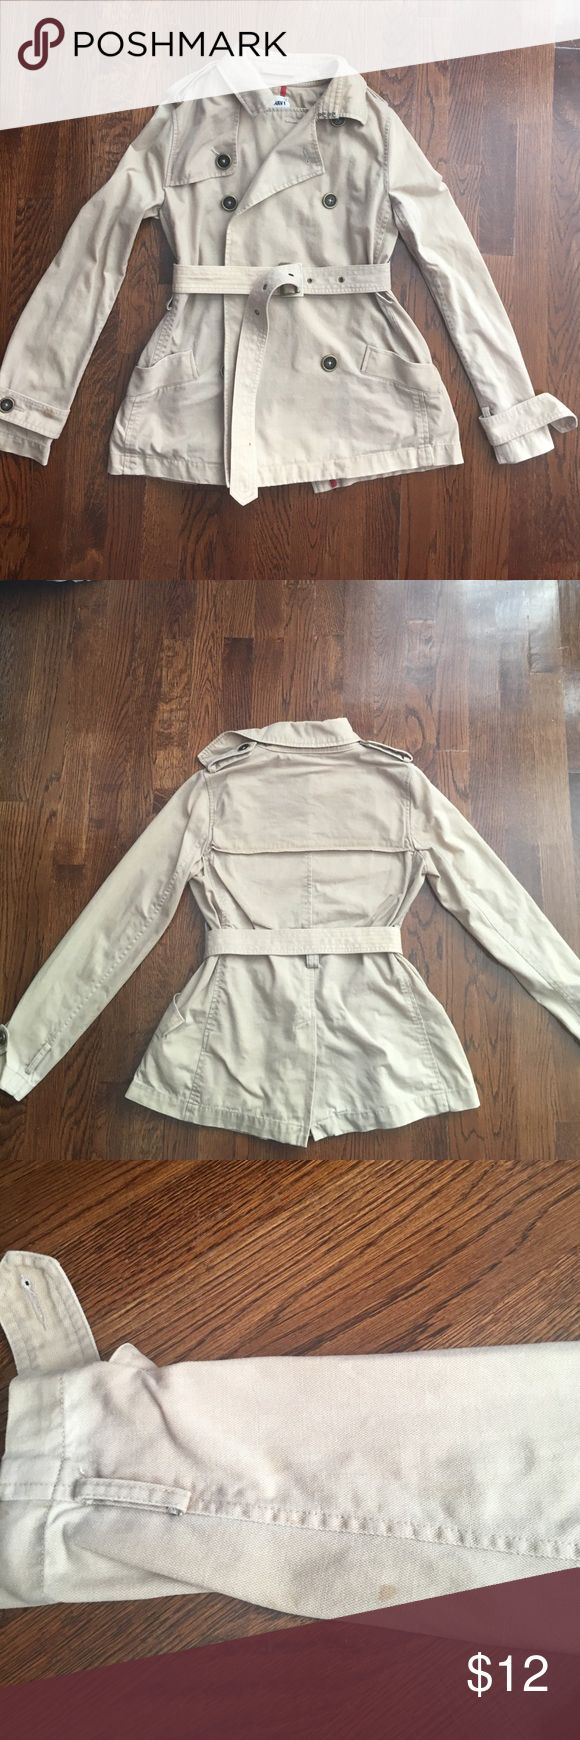 Old Navy Coat Women's small Old Navy Coat. Good used condition. Worn only a handful of times. There are a few small stains noted in pictures. Would probably come out with some elbow grease. The largest one is on a removable strap around the sleeve opening and those could be removed. The other two stains are small and barely noticeable. 100% cotton. Has a canvas like feel to the material. Old Navy Jackets & Coats Blazers